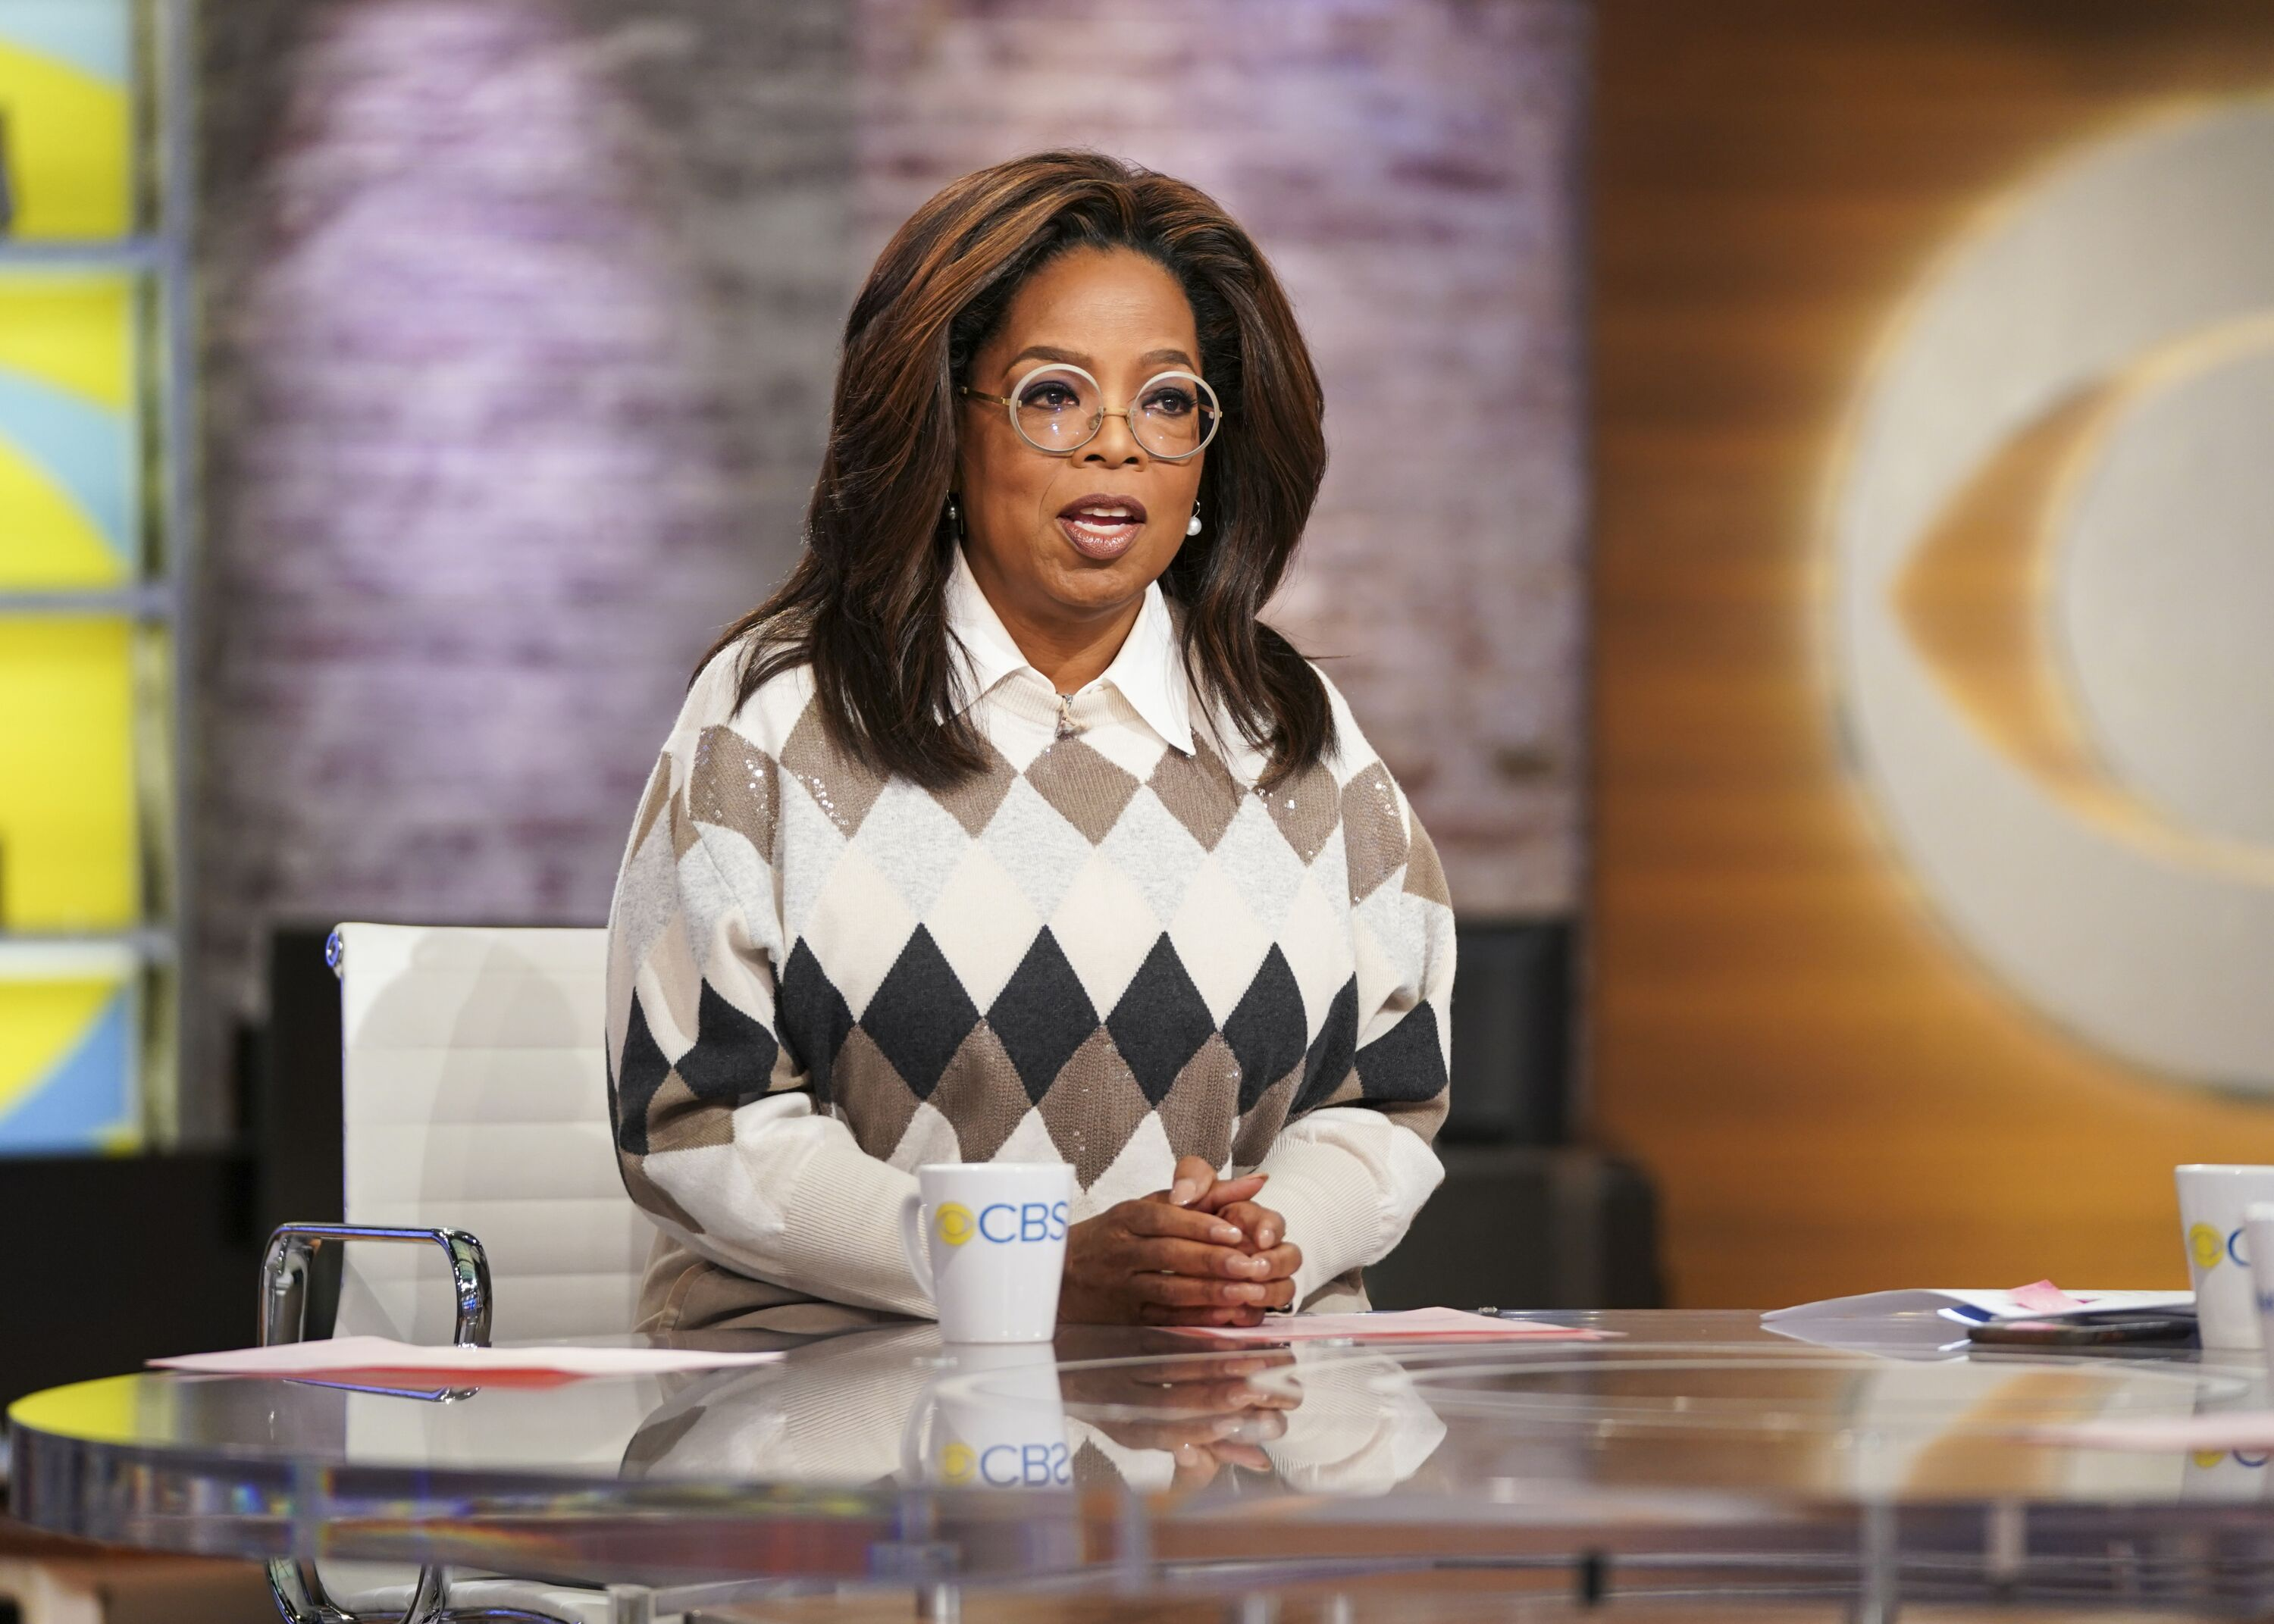 Oprah Winfrey on set at the CBS network | Source: Getty Images/GlobalImagesUkraine